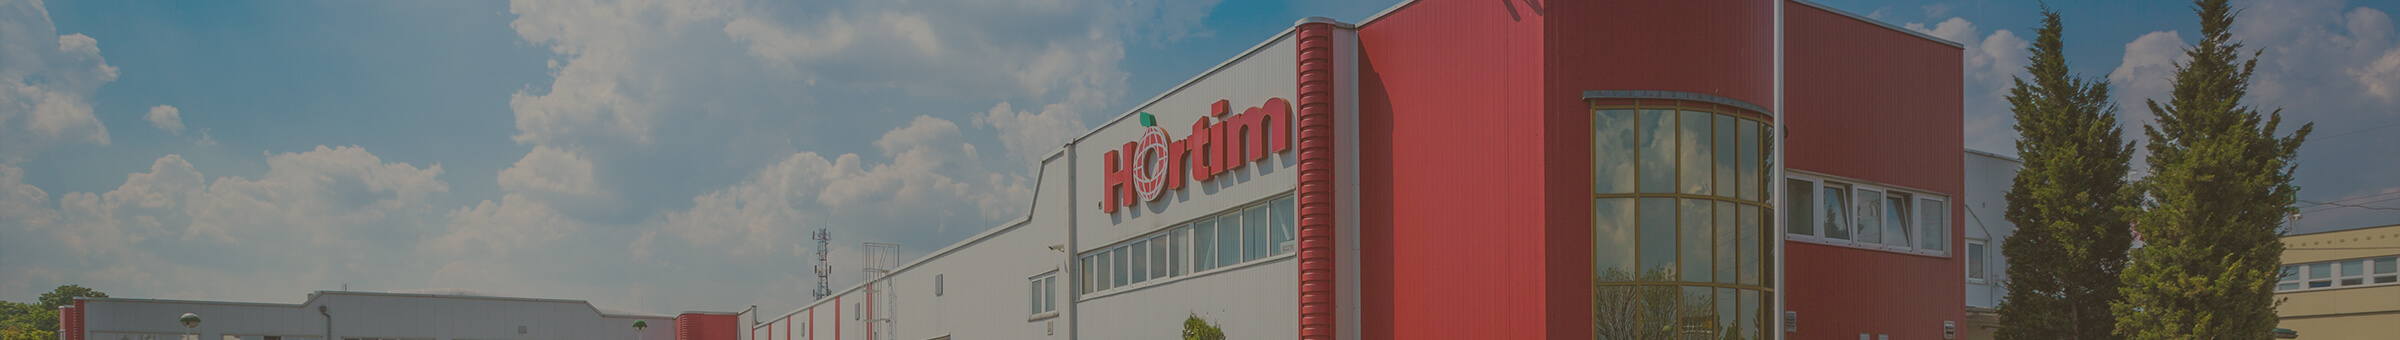 Hortim-International, spol. s r.o.